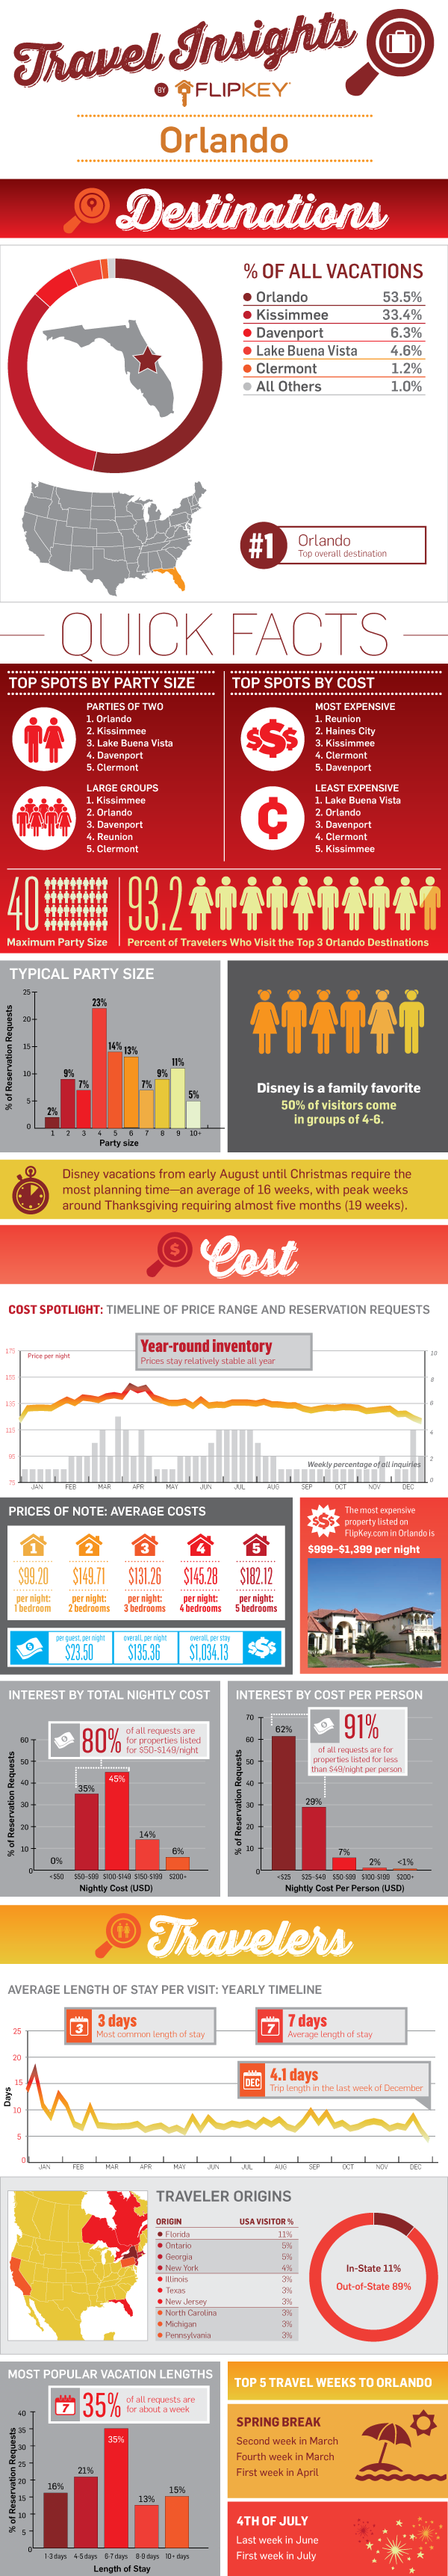 Disney Travel Trends by FlipKey